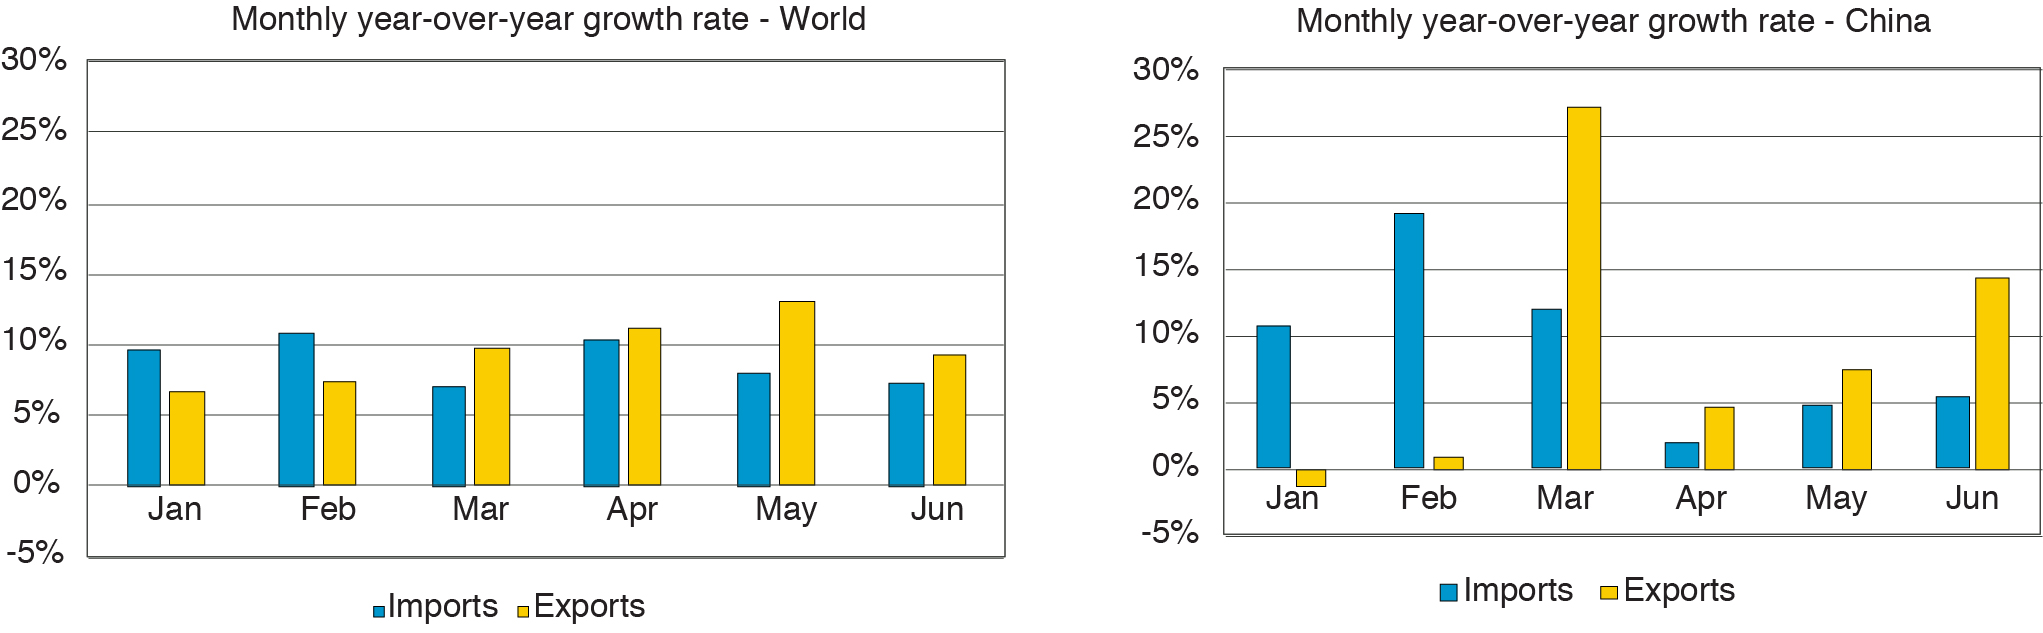 Figure 2 The Monthly Year-Over-Year Growth Rates of U.S. Exports and Imports of Goods to Major Trading Partners, January to June, 2017 and 2018